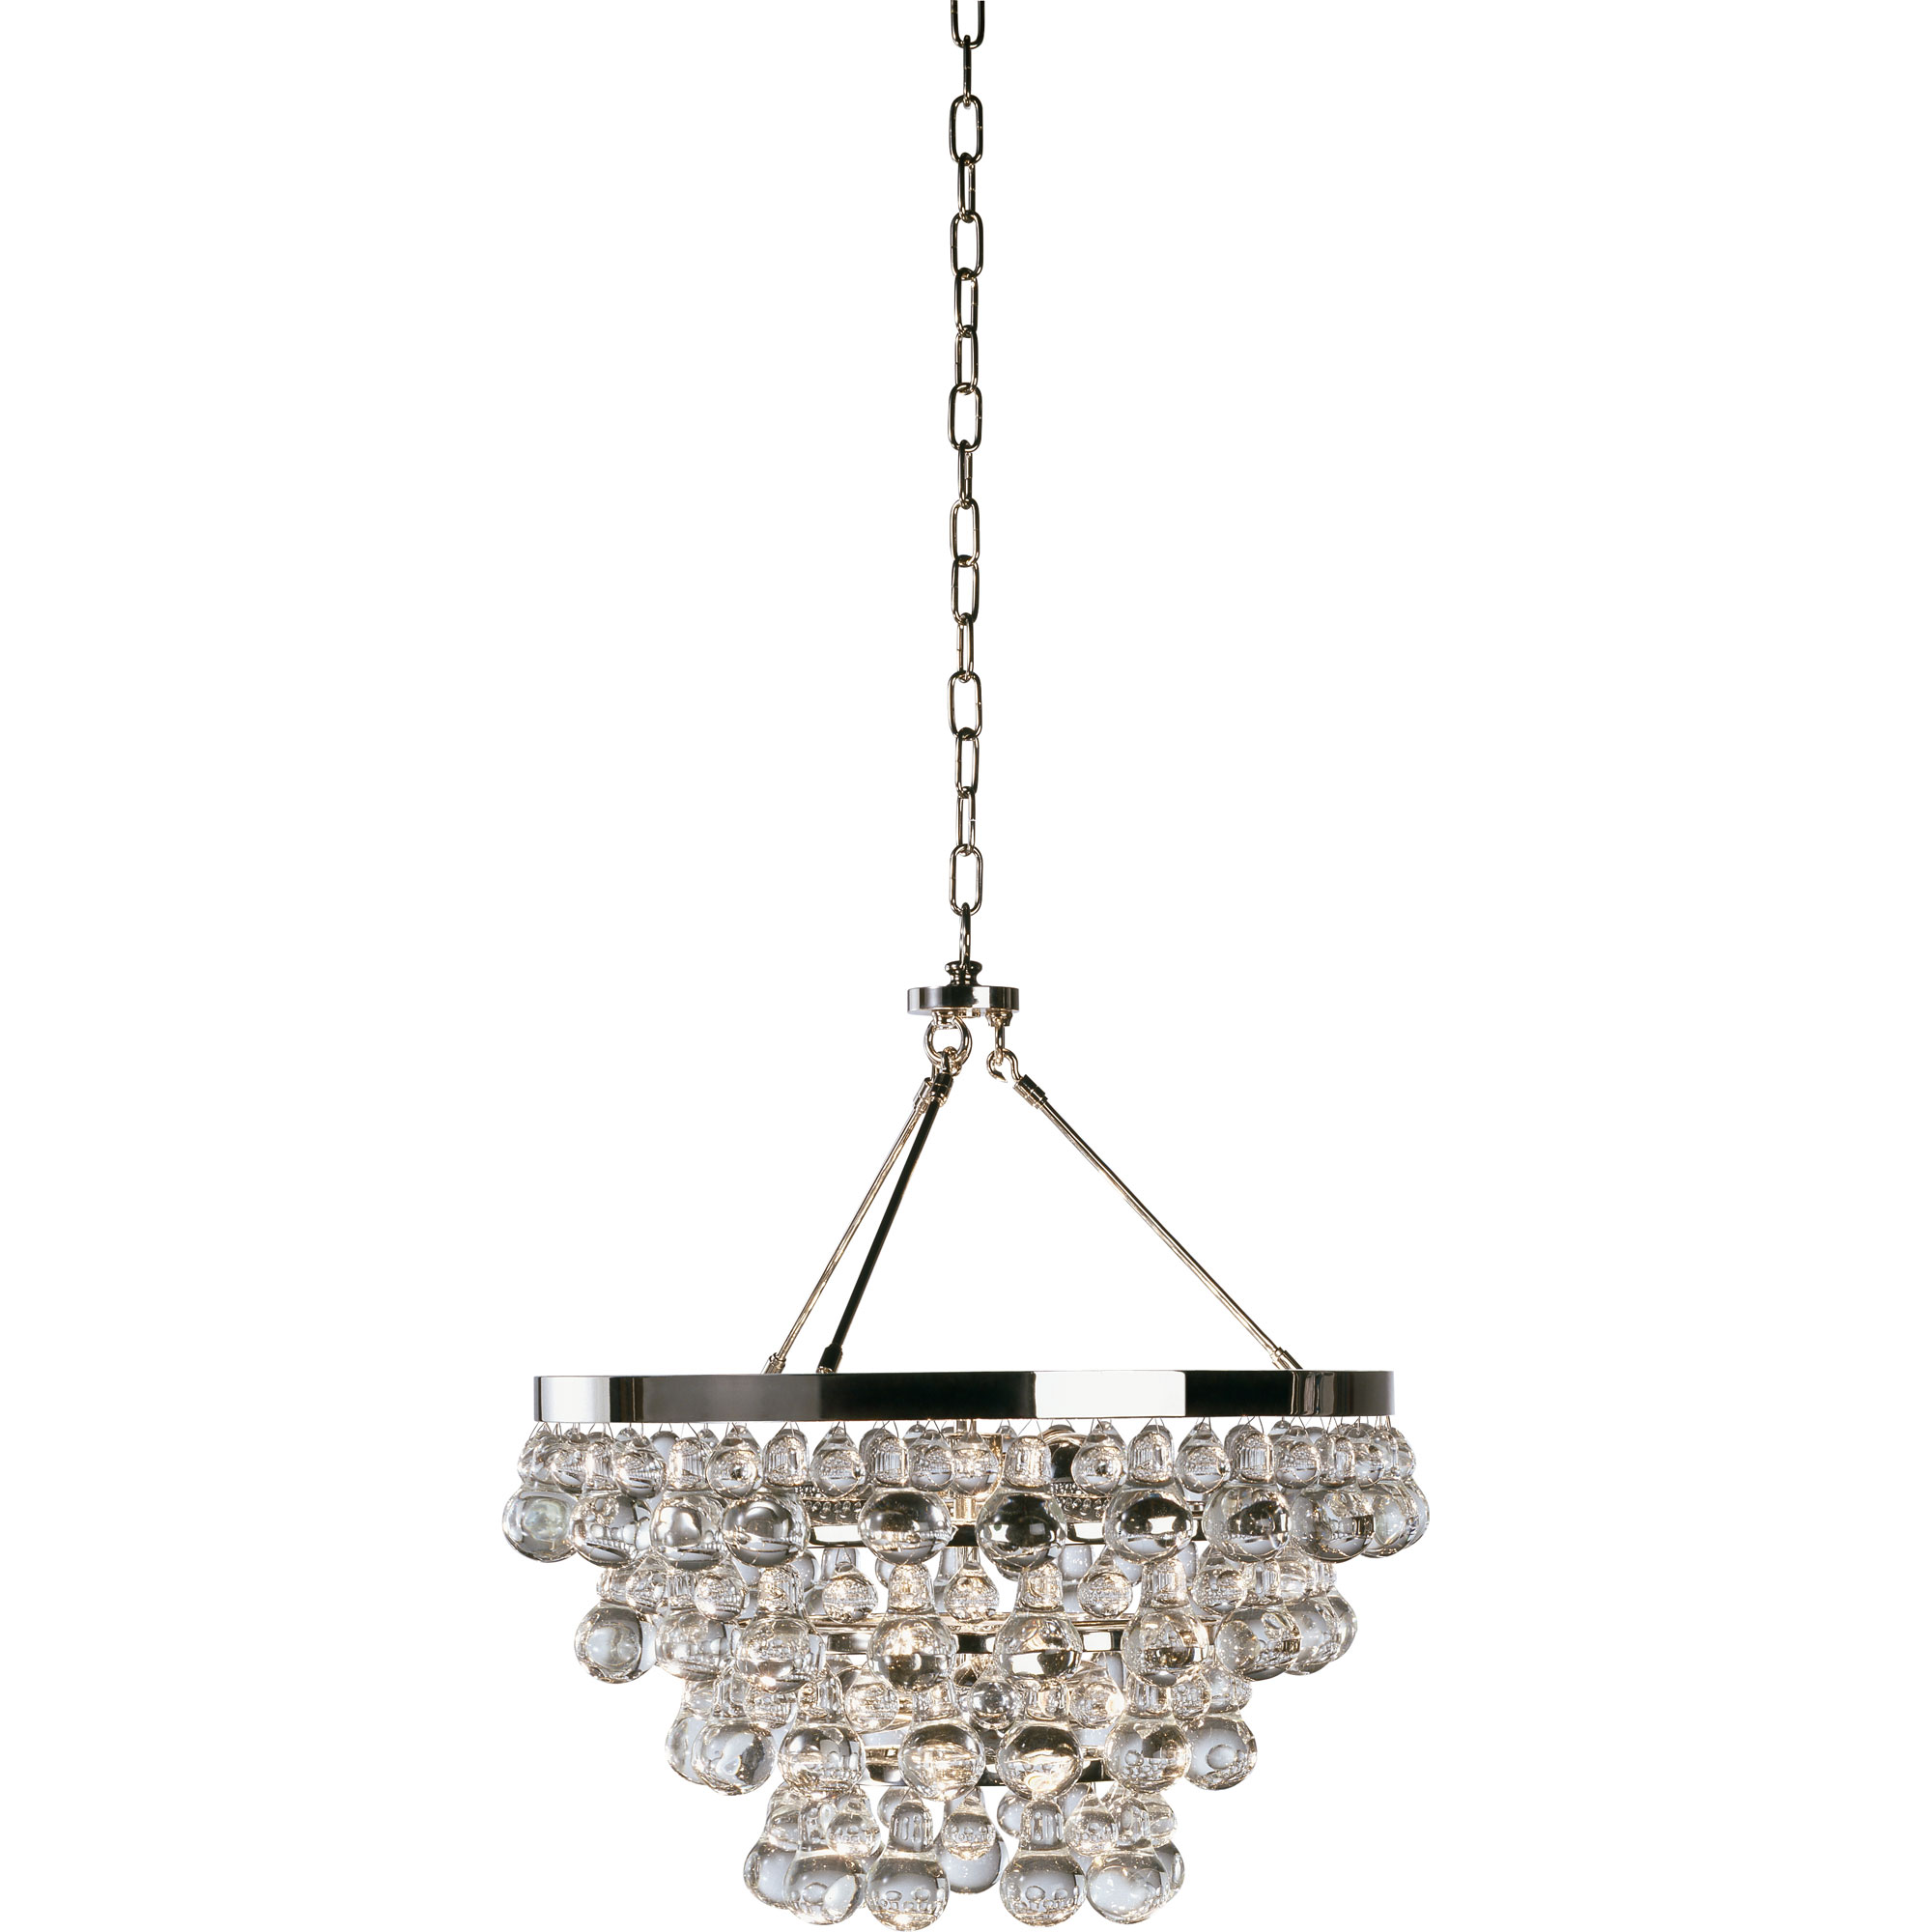 bling convertible chandelier by robert abbey ra s1000